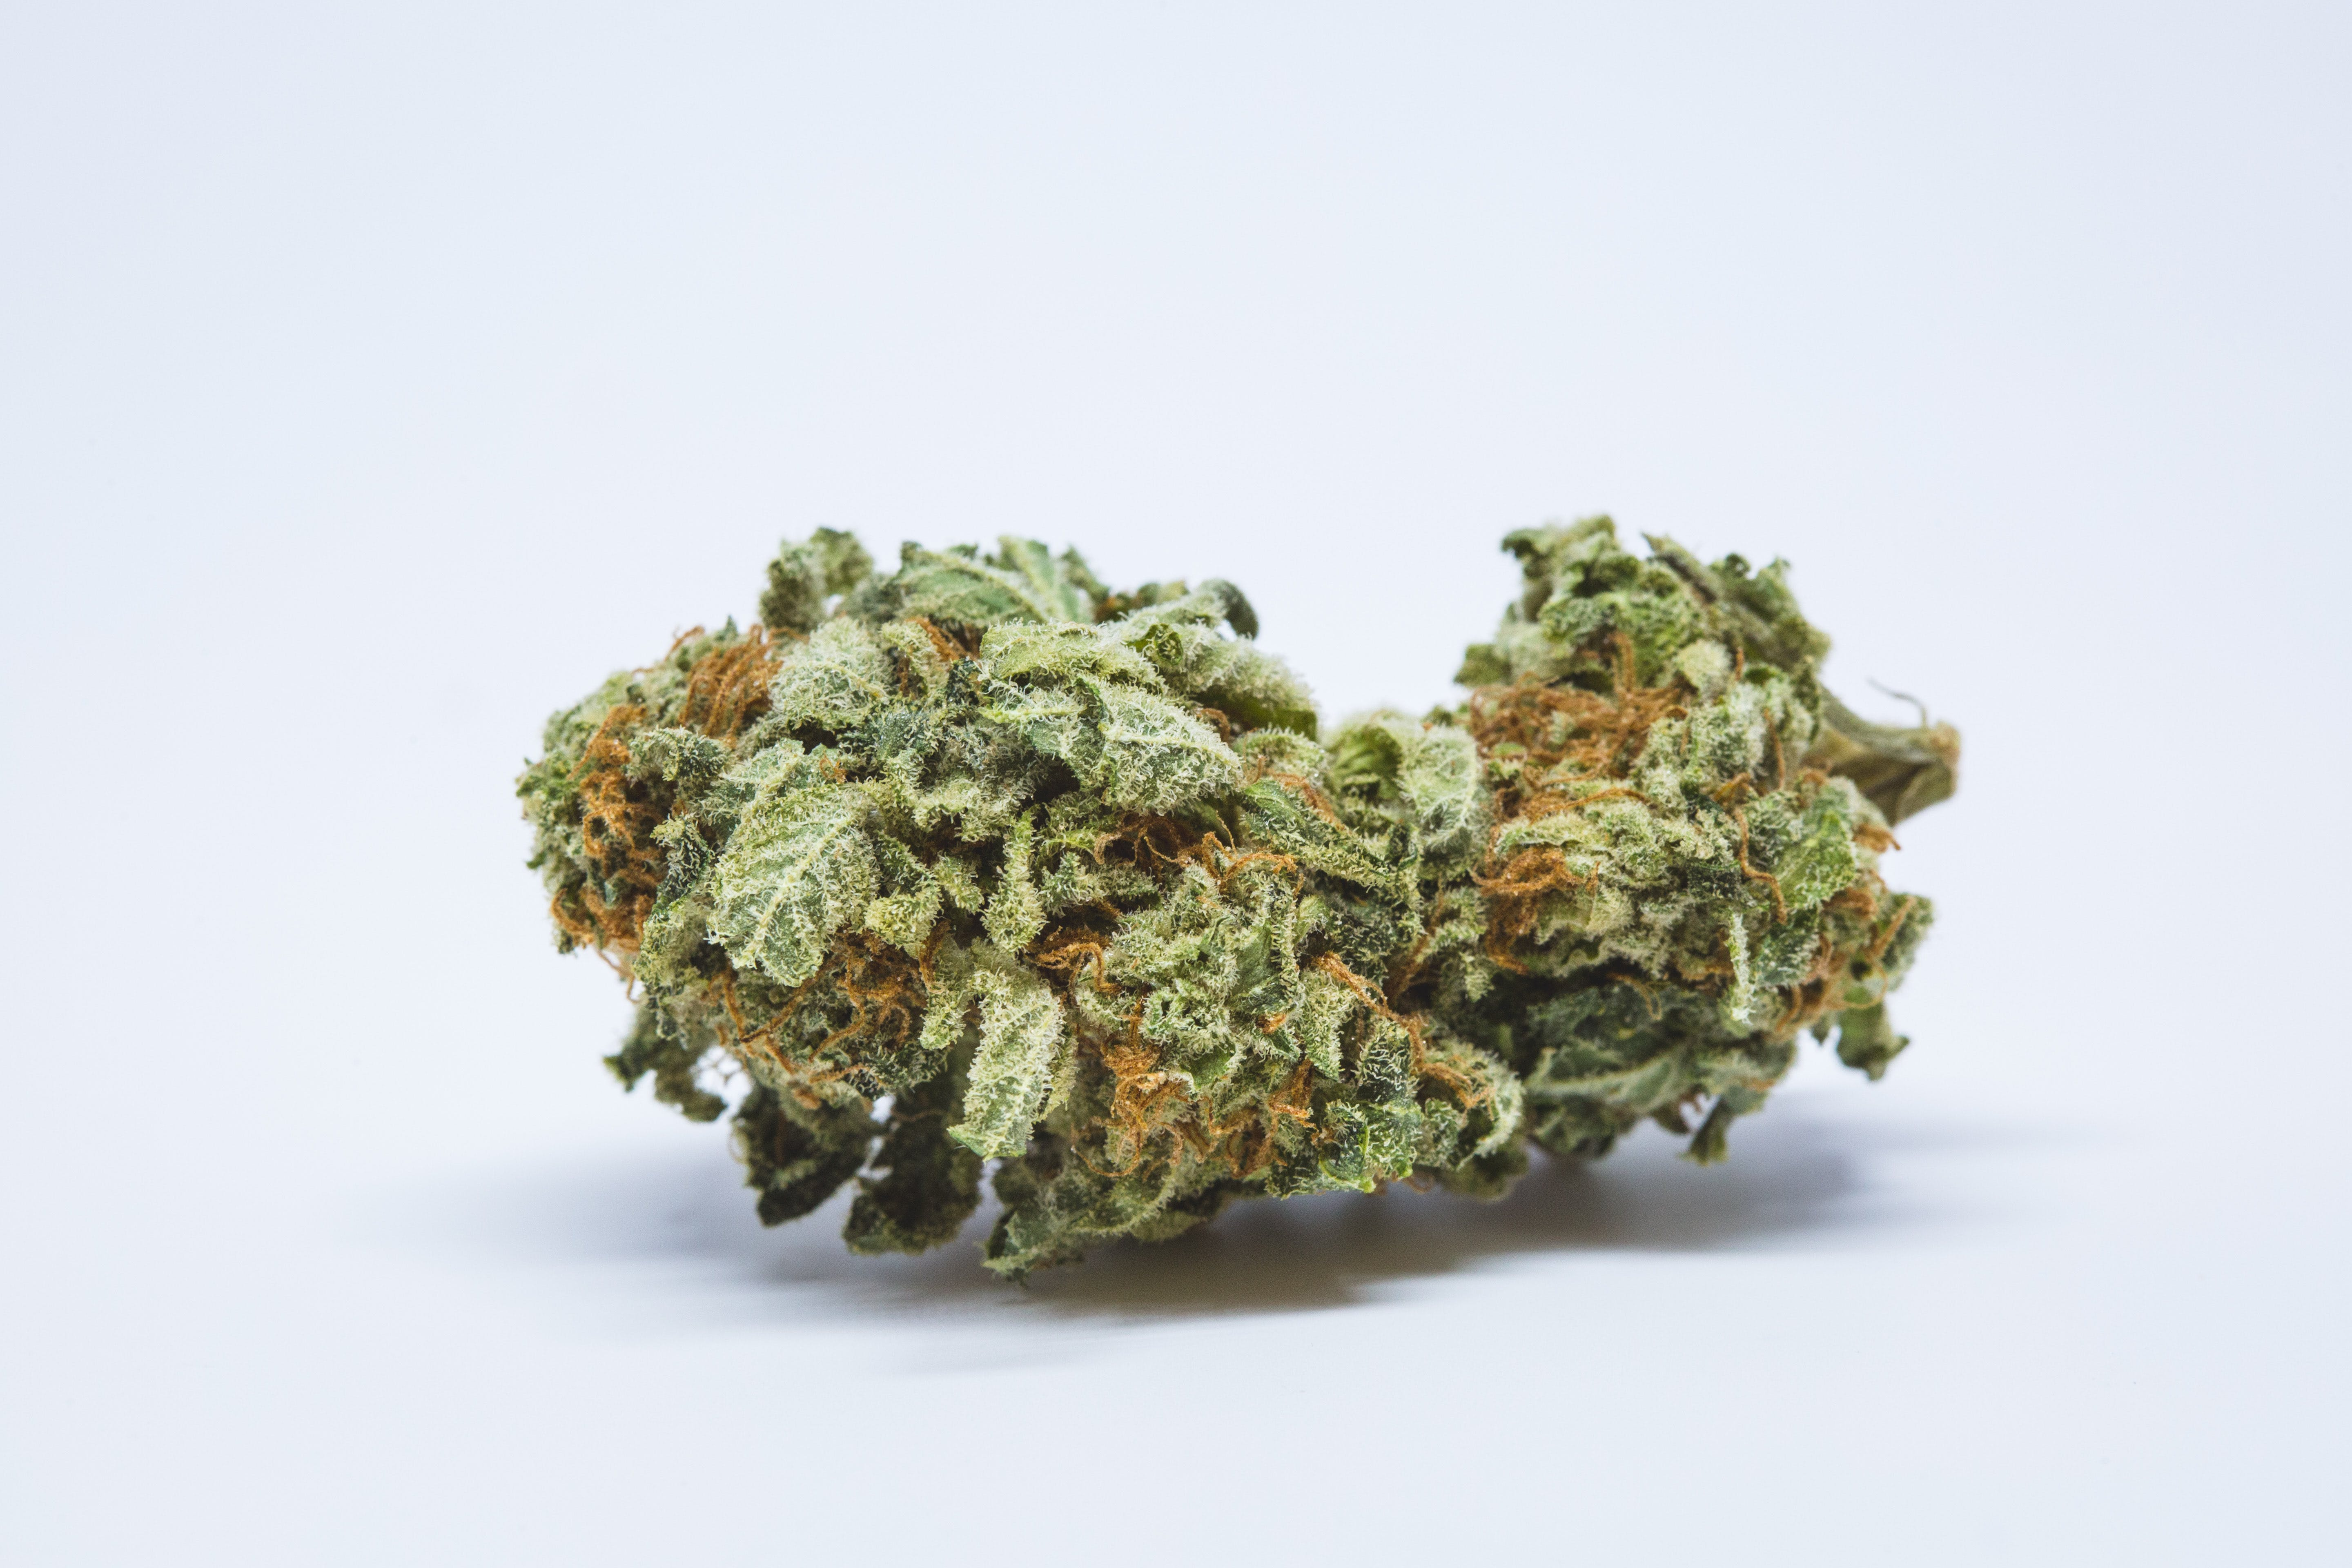 Moby Dick Weed; Moby Dick Cannabis Strain; Moby Dick Sativa Marijuana Strain